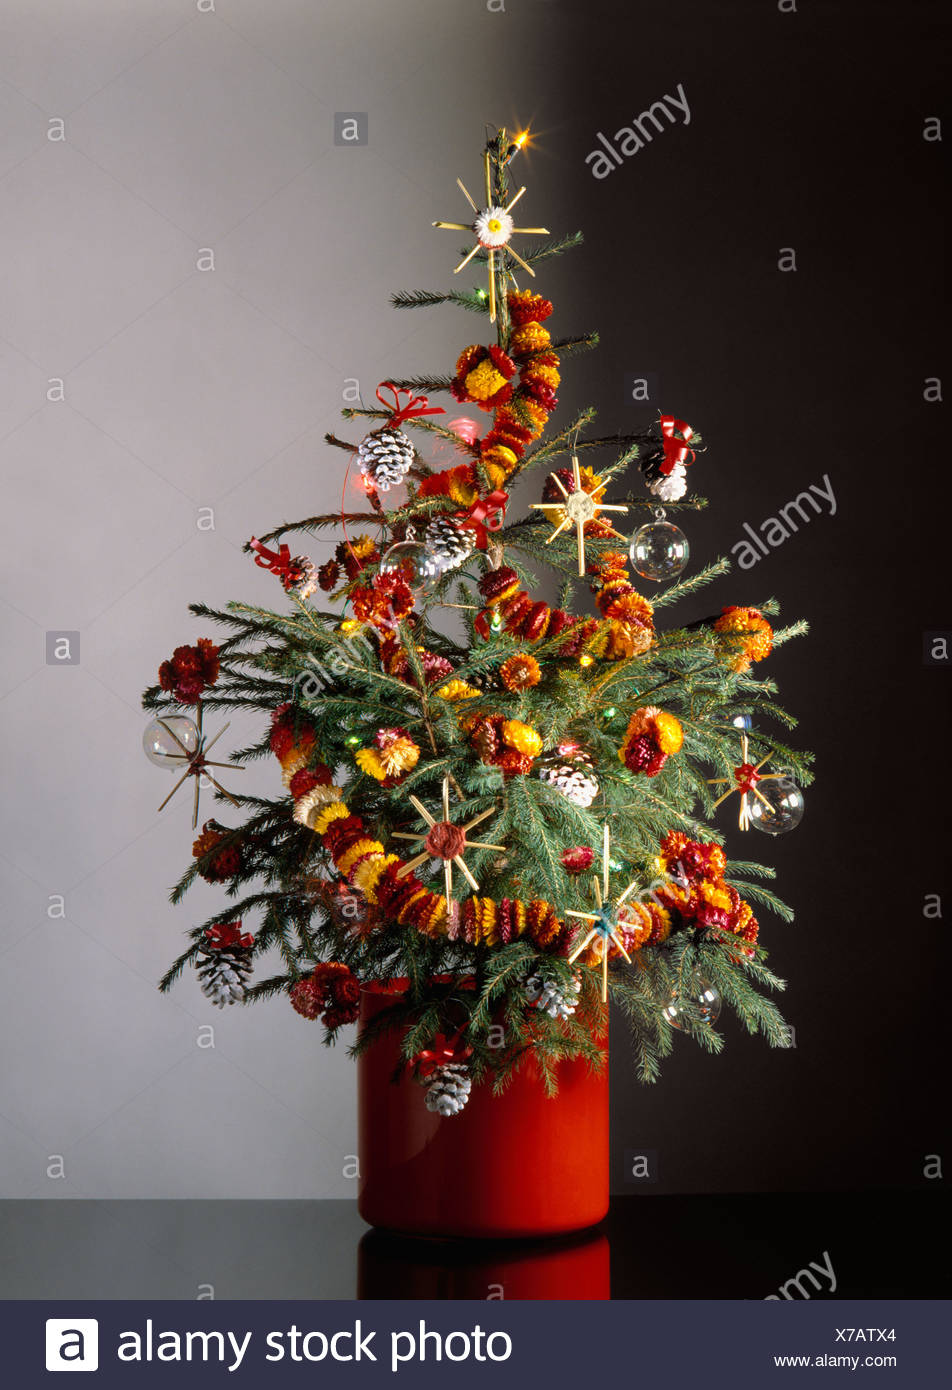 christmas tree decorated with natural decorations of corn stars chains of dried flowers and pine cones